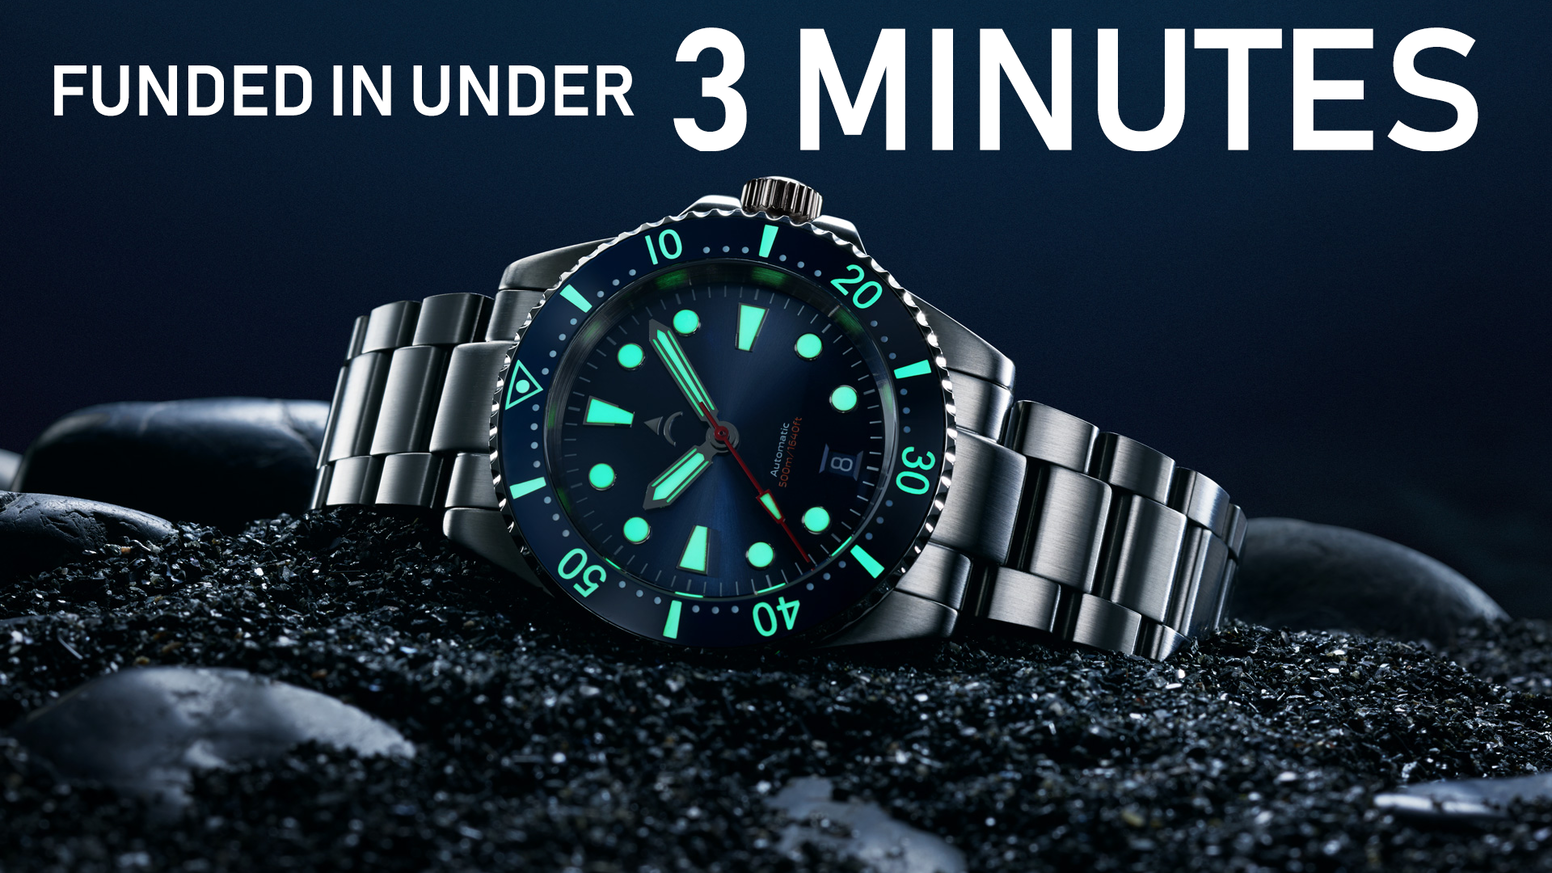 Iconic stainless-steel dive watches with 500m depth rating. Designed to offer superb value with great specifications.